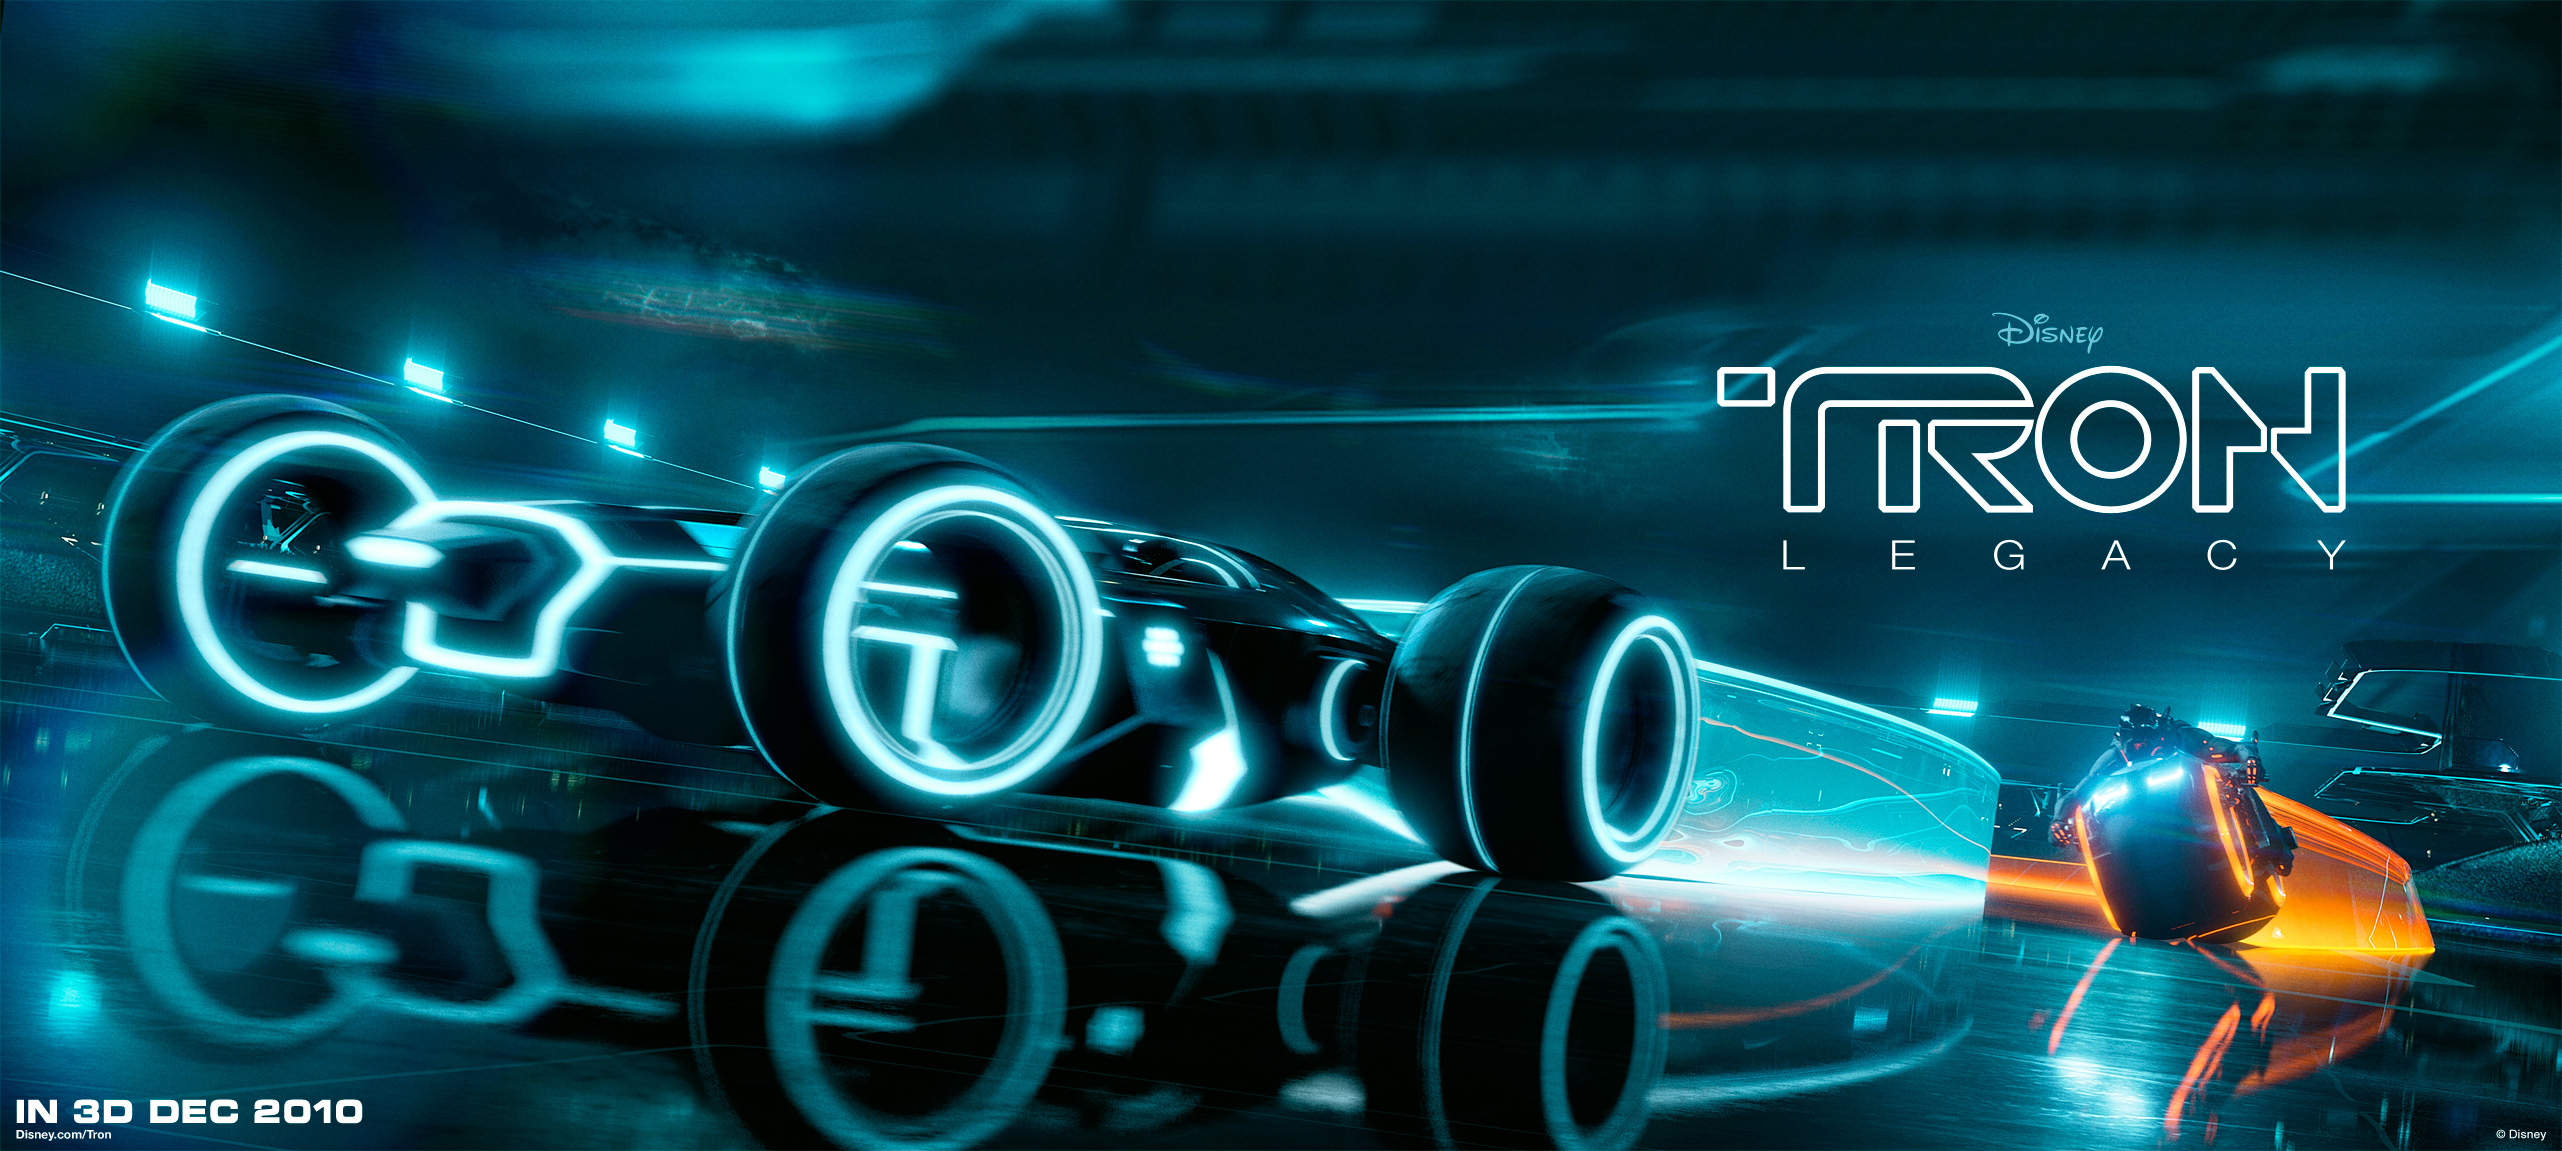 lighting inspiration: tron legacy | lucept